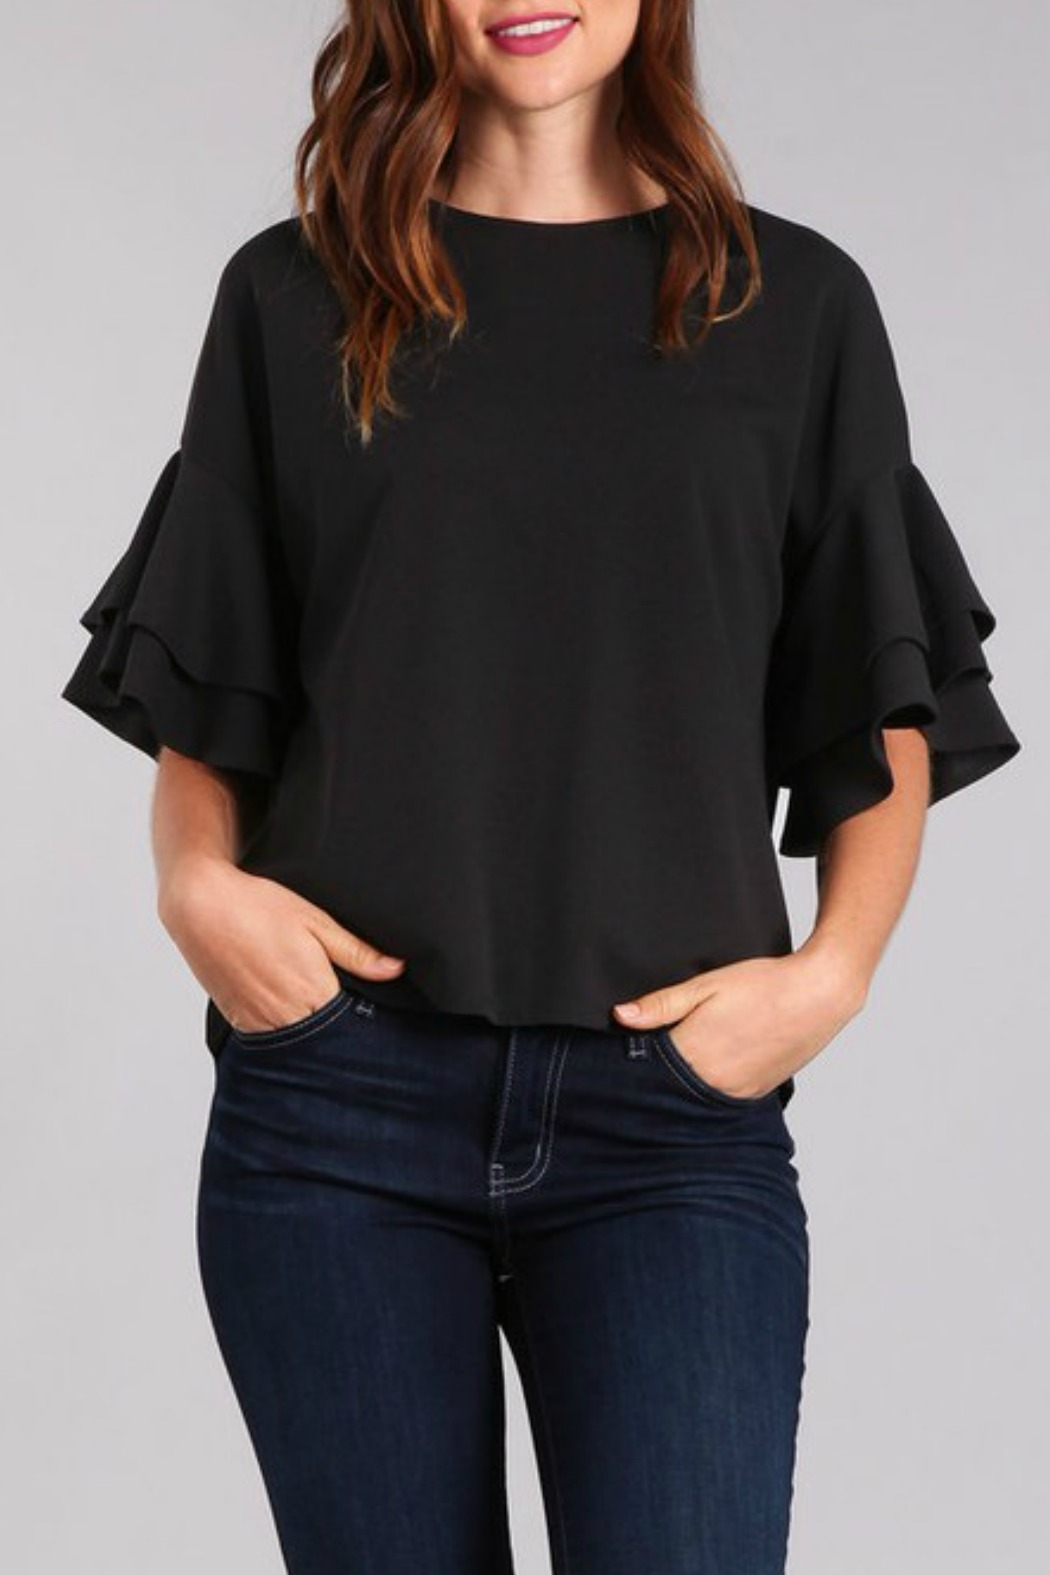 In Style Tiered Ruffle Sleeve Top - Main Image